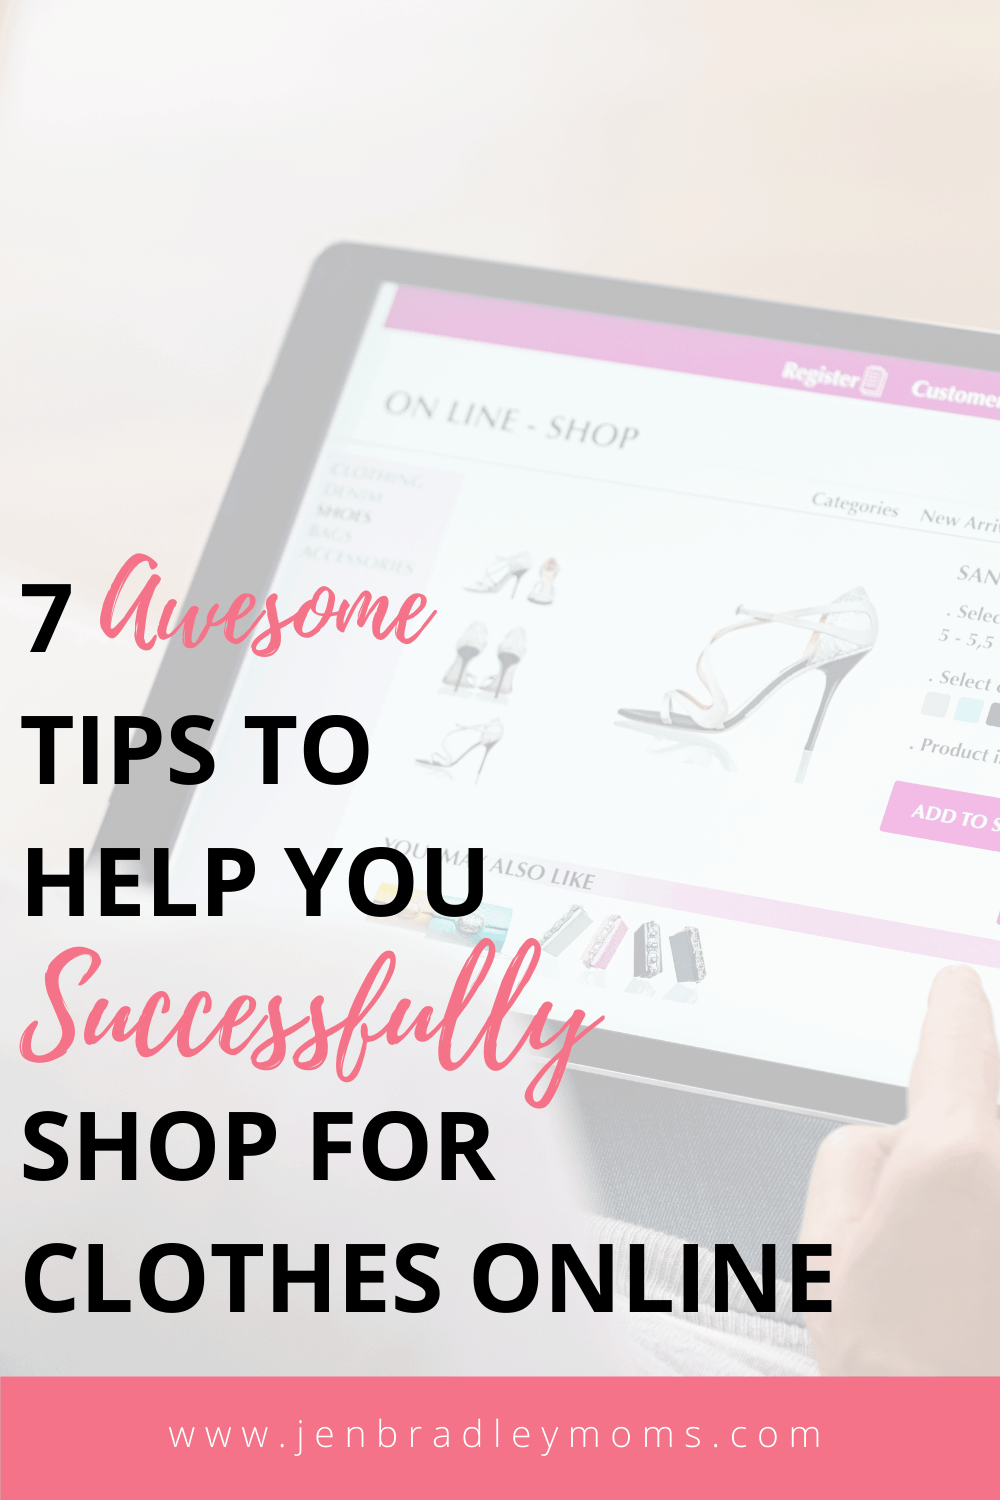 7 Awesome Tips to Know How to Shop for Clothes Online